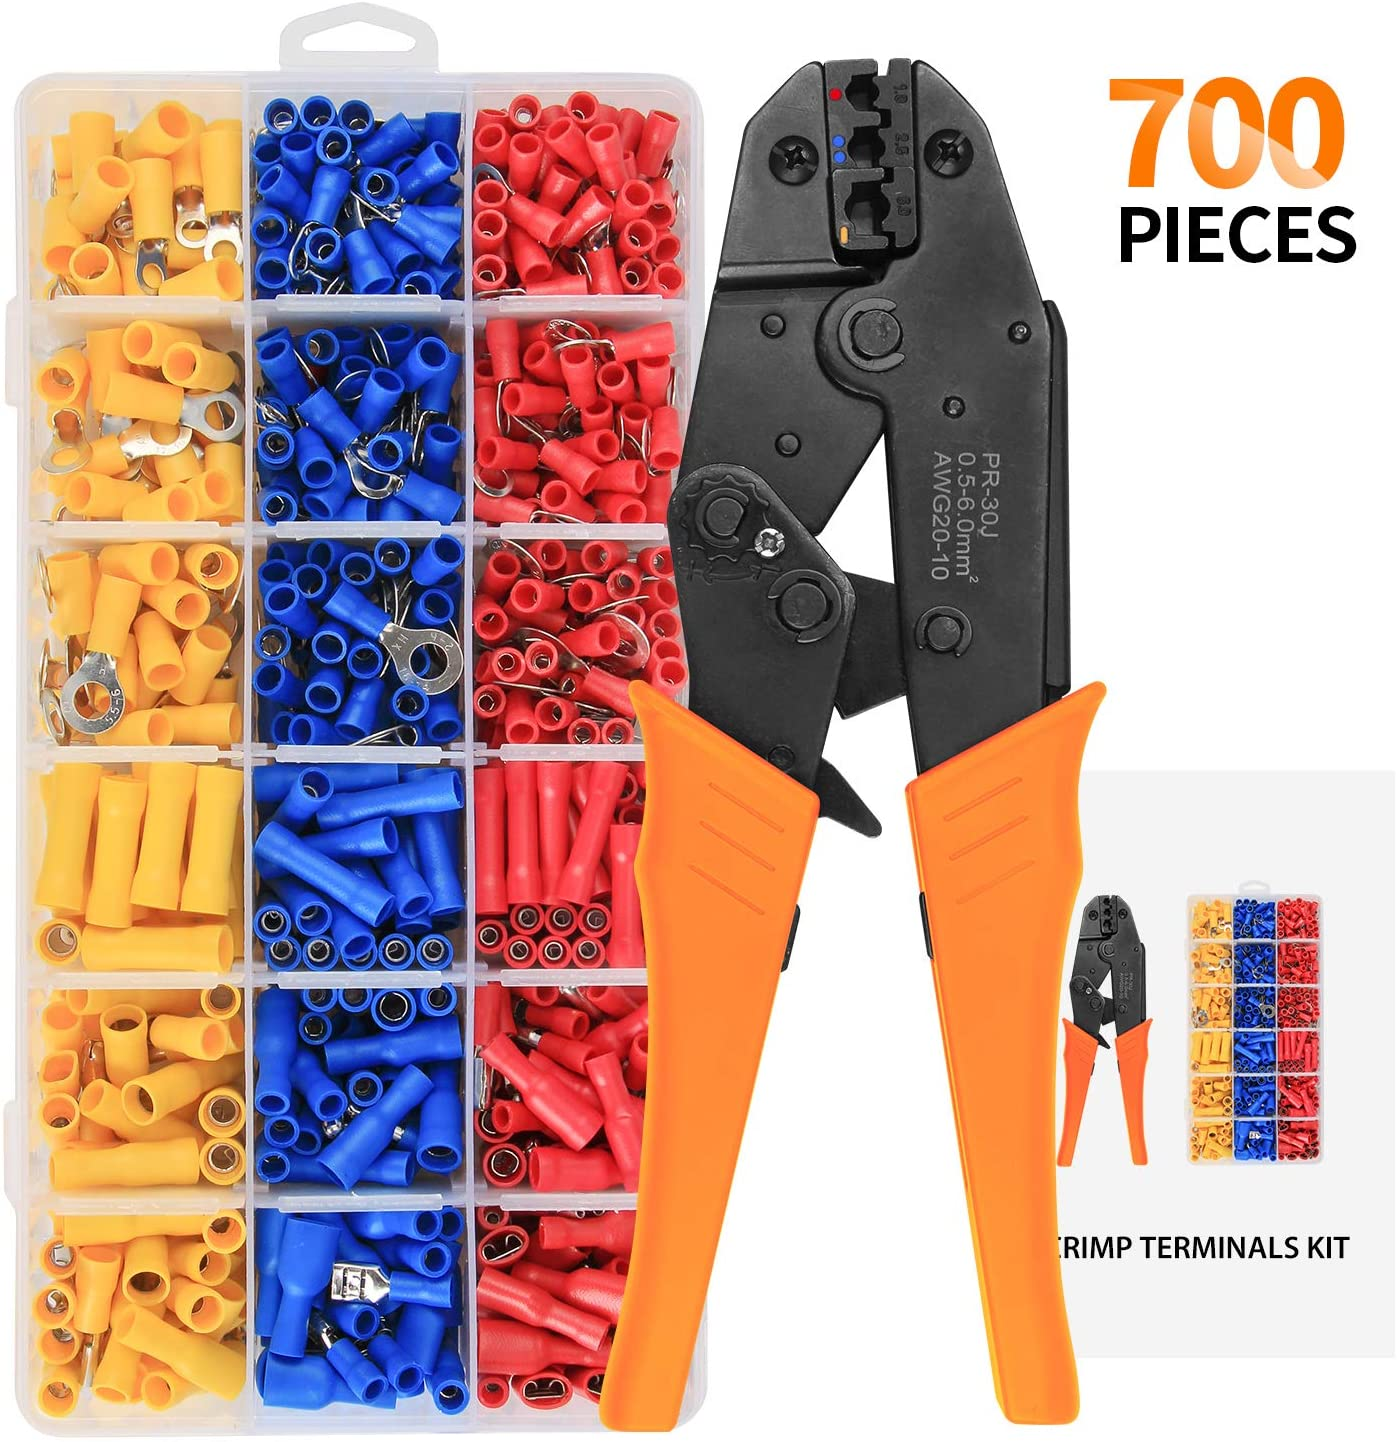 5 way Quality Crimping//stripping Tool for automotive terminals